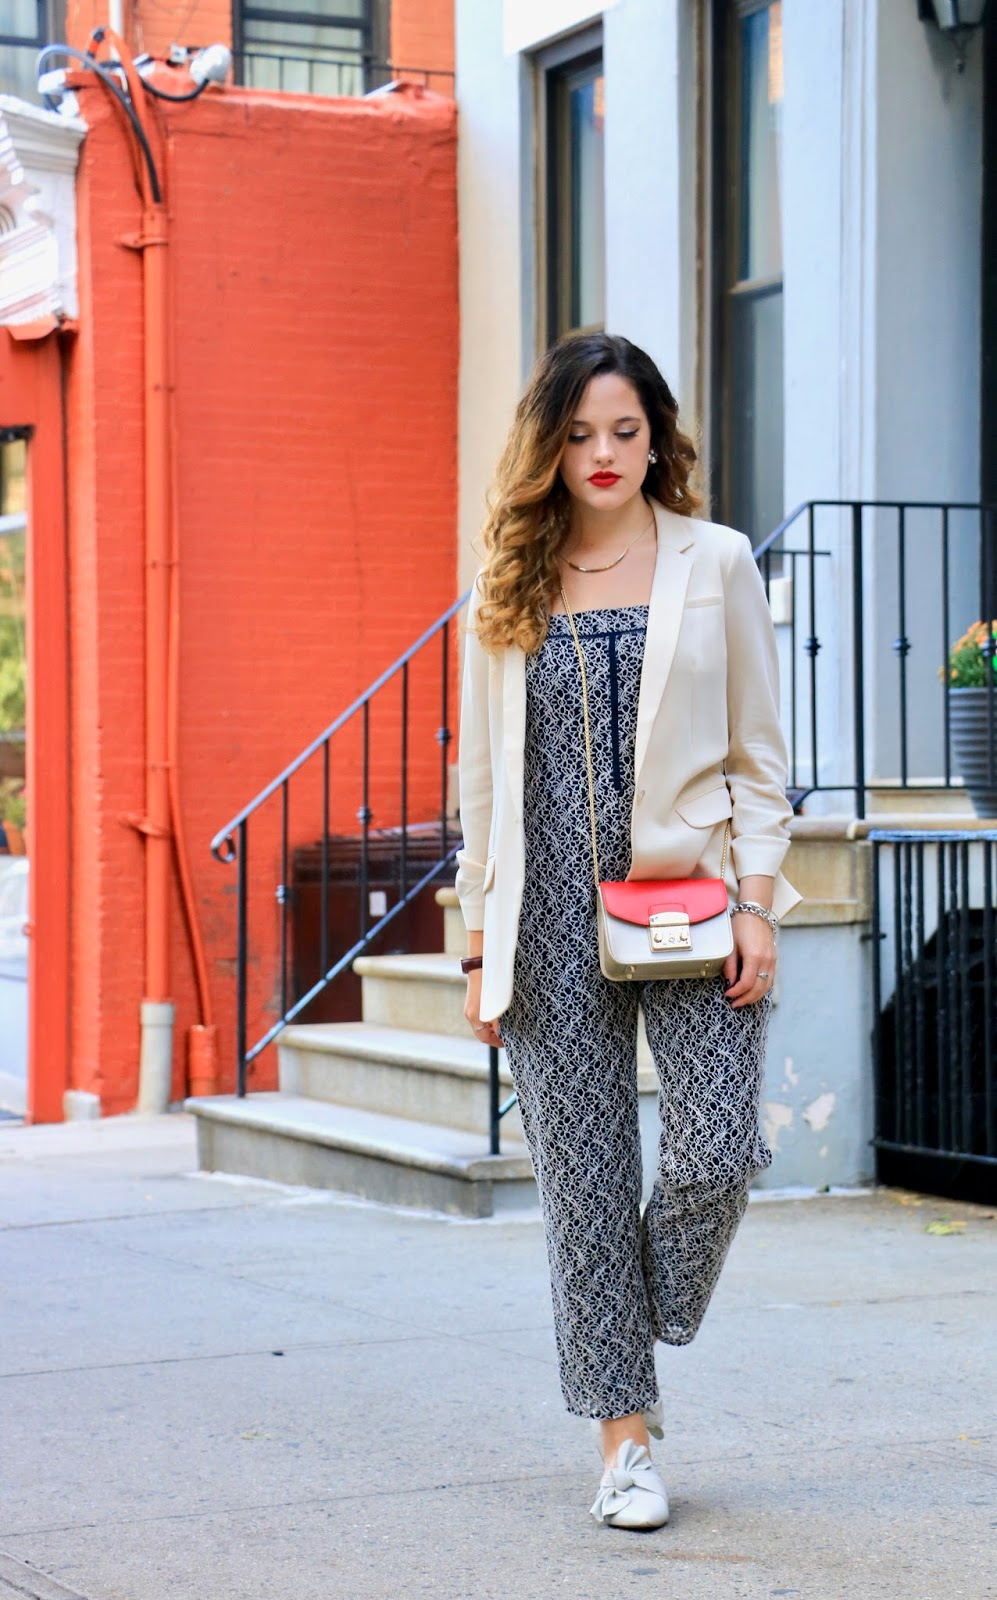 NYC fashion blogger Kathleen Harper wearing a Banana Republic jumpsuit